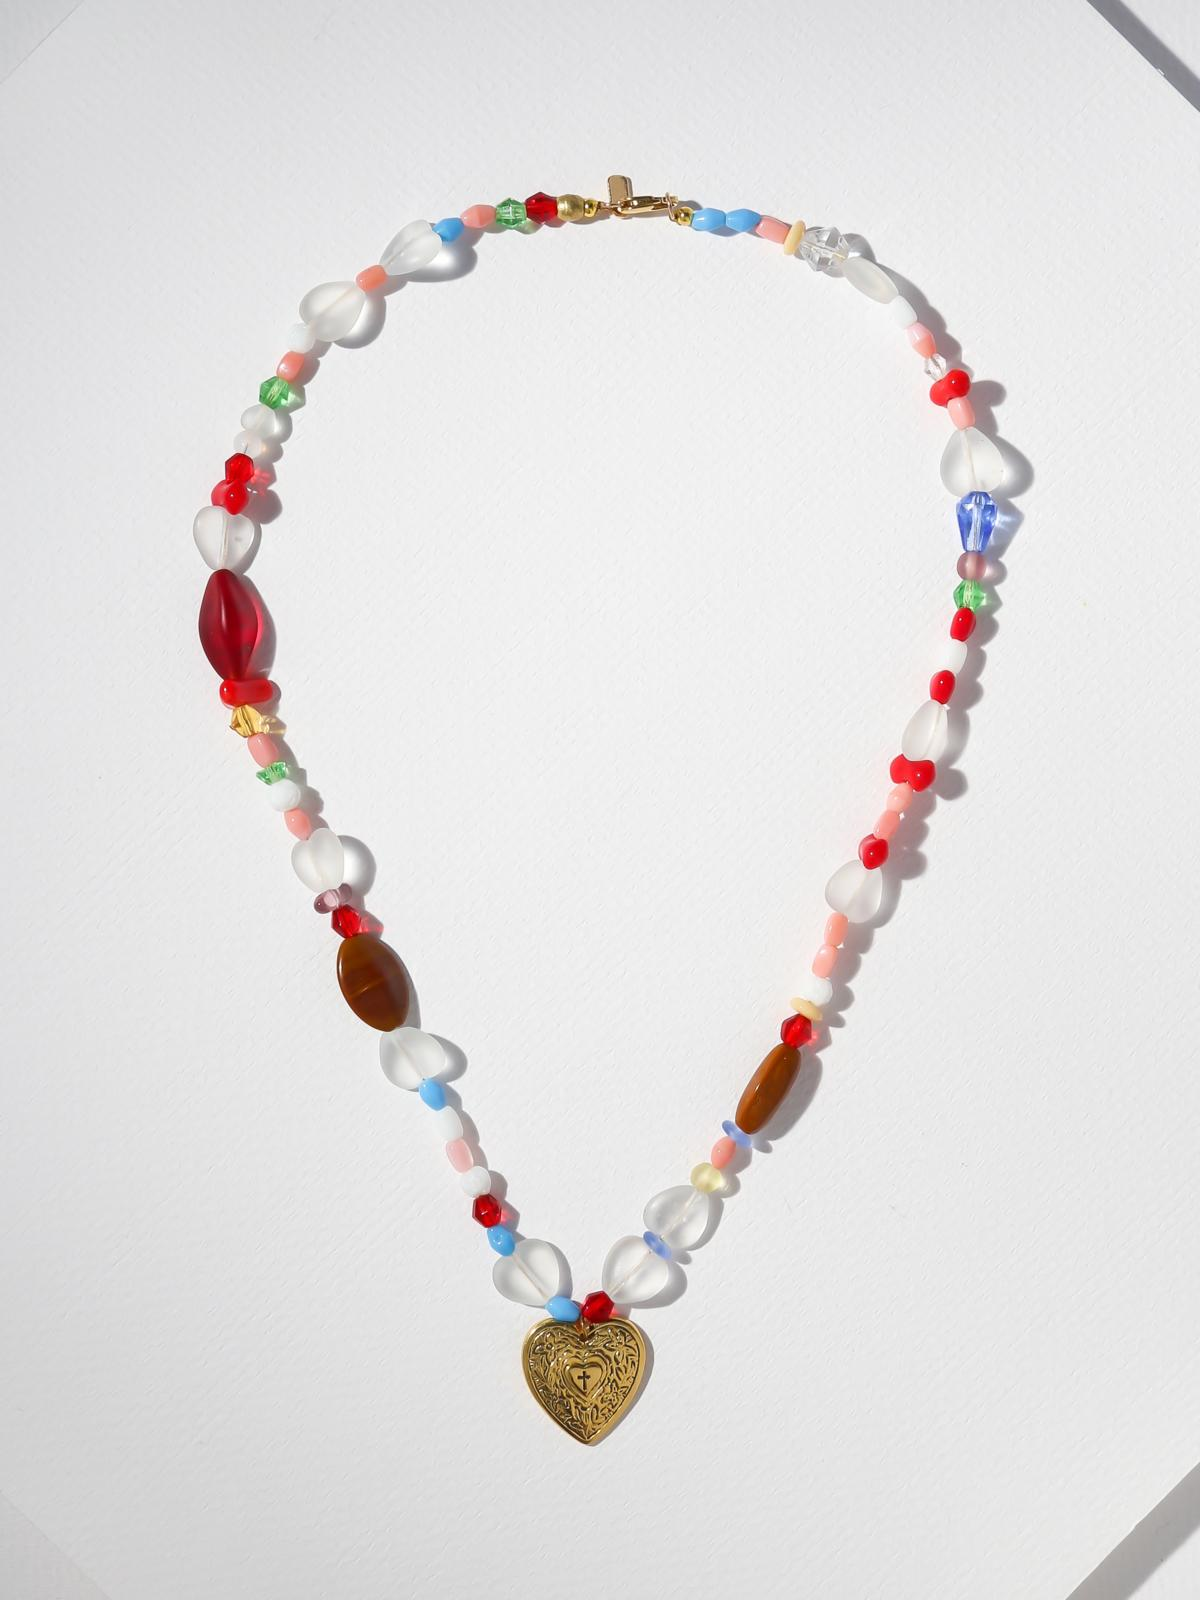 The Fiesta Necklace